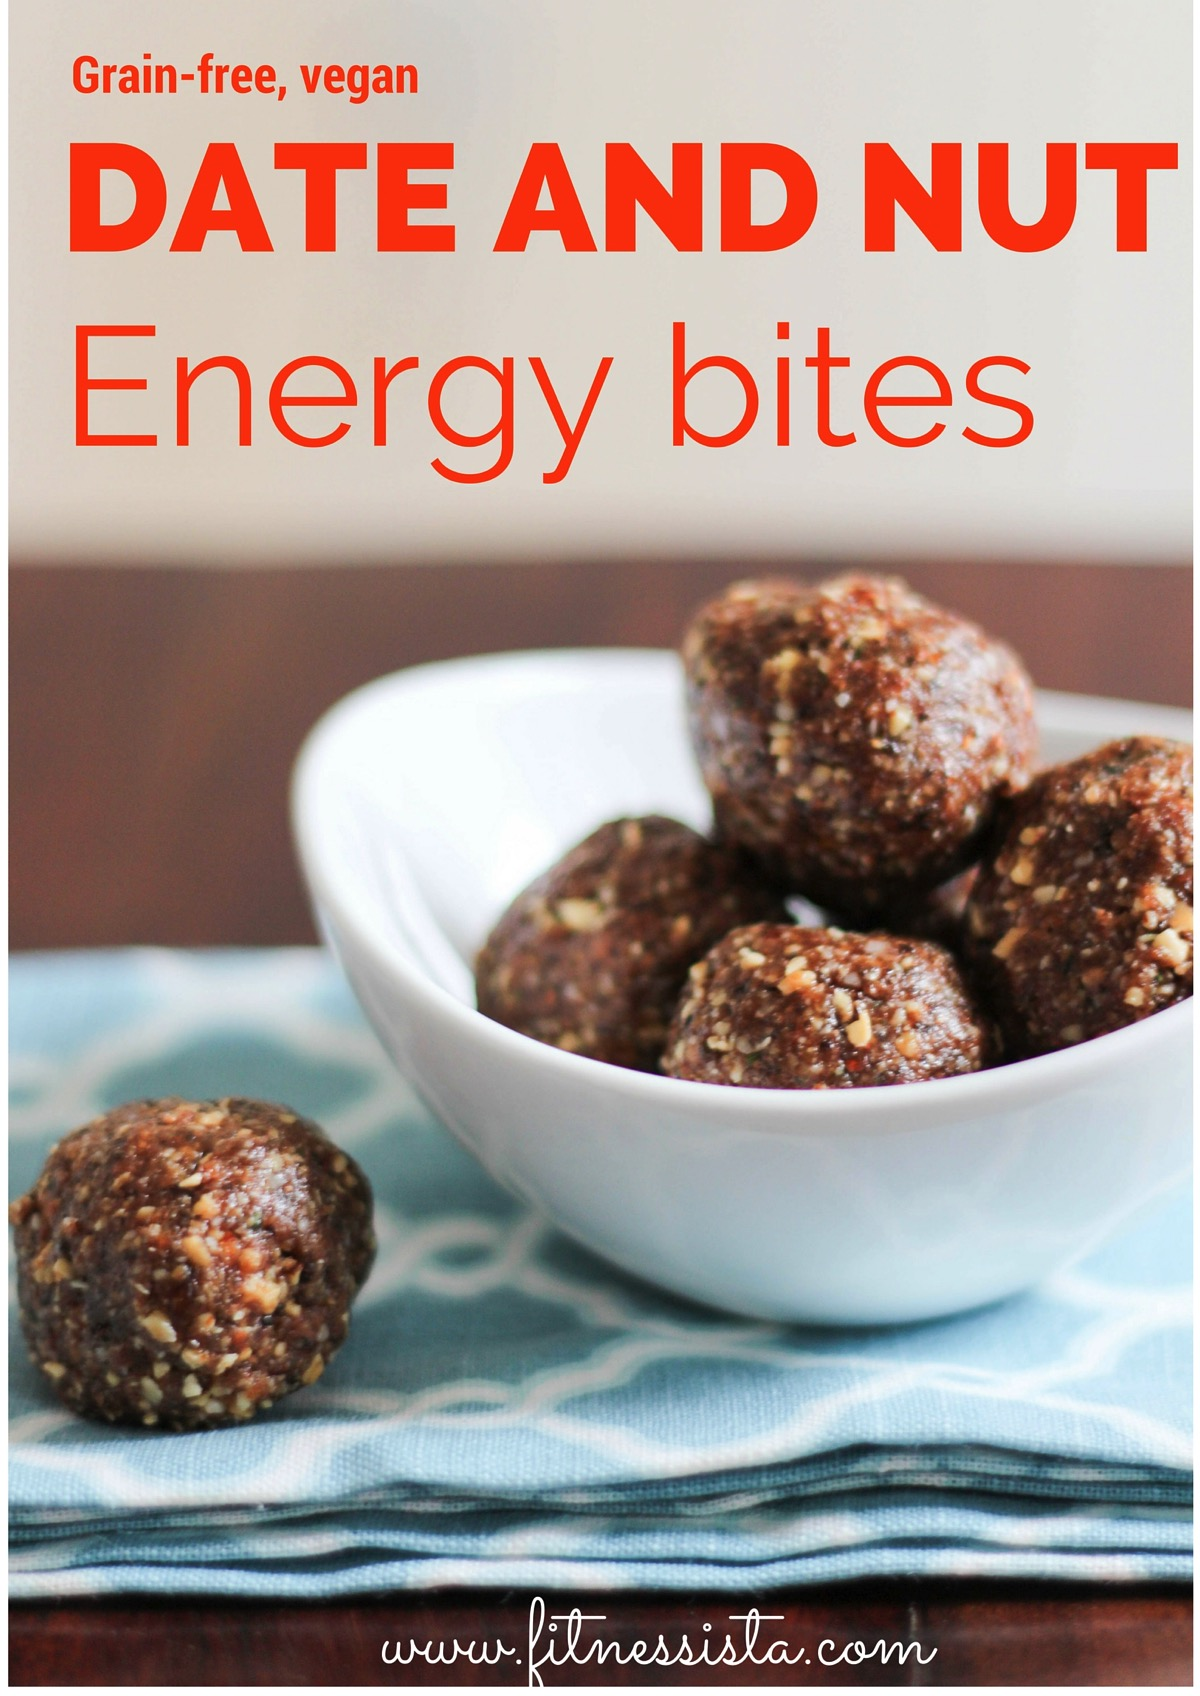 Date and nut snack bites